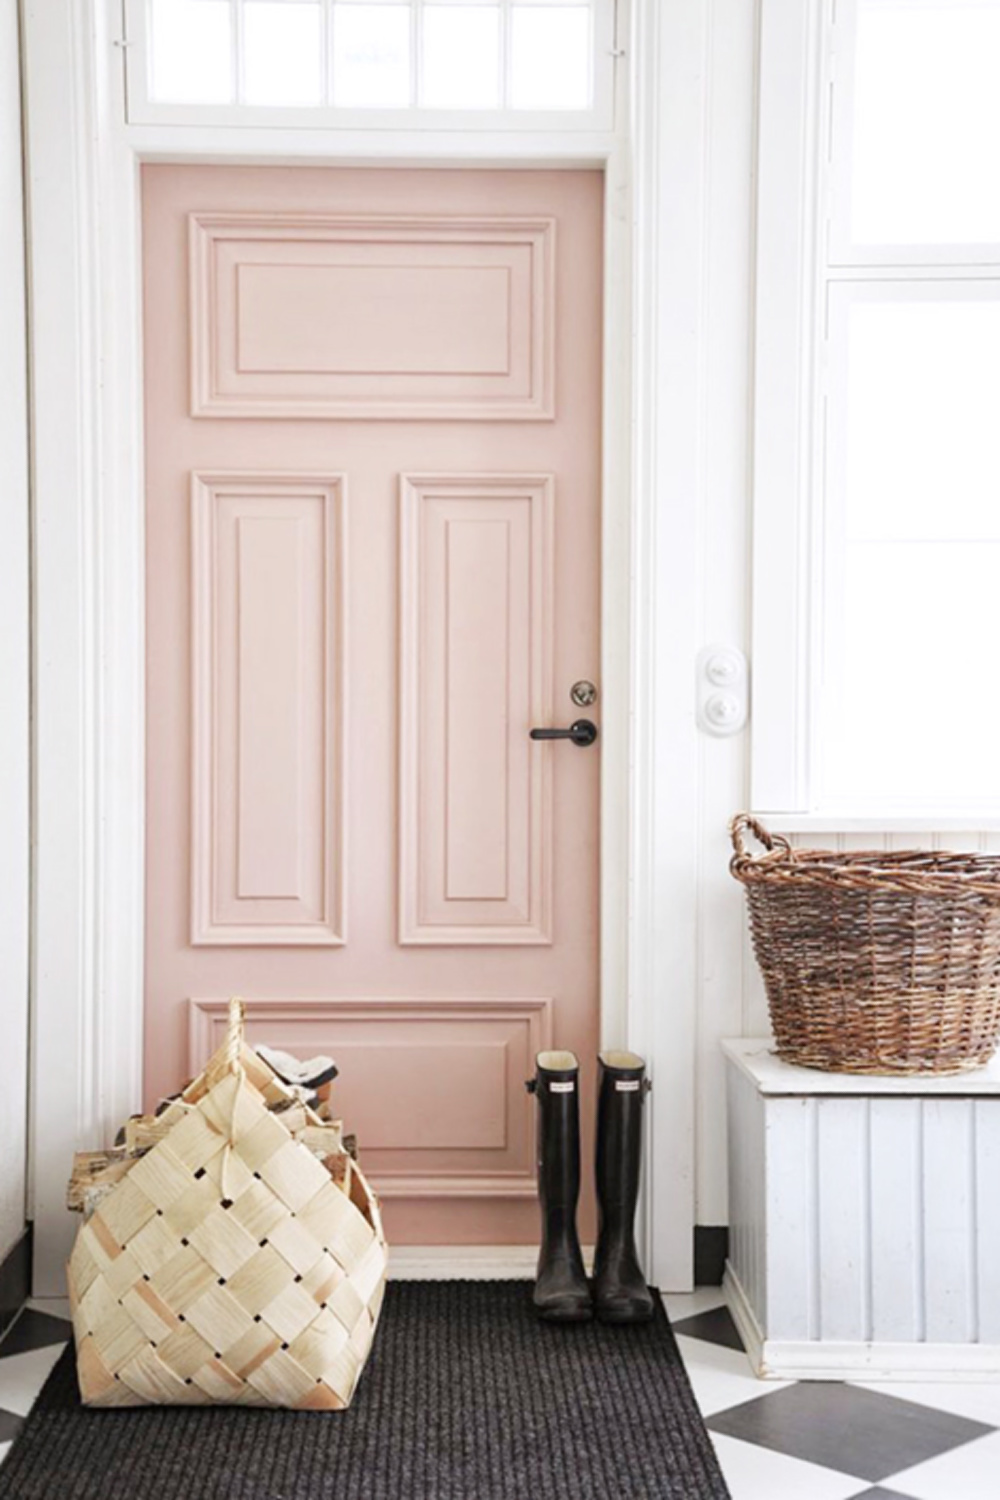 Pink ground wall paint color by Farrow & Ball. A gorgeous blush pink vintage door in an English home. Come see the Best Sophisticated, Chic and Subtle Pink Paint Colors